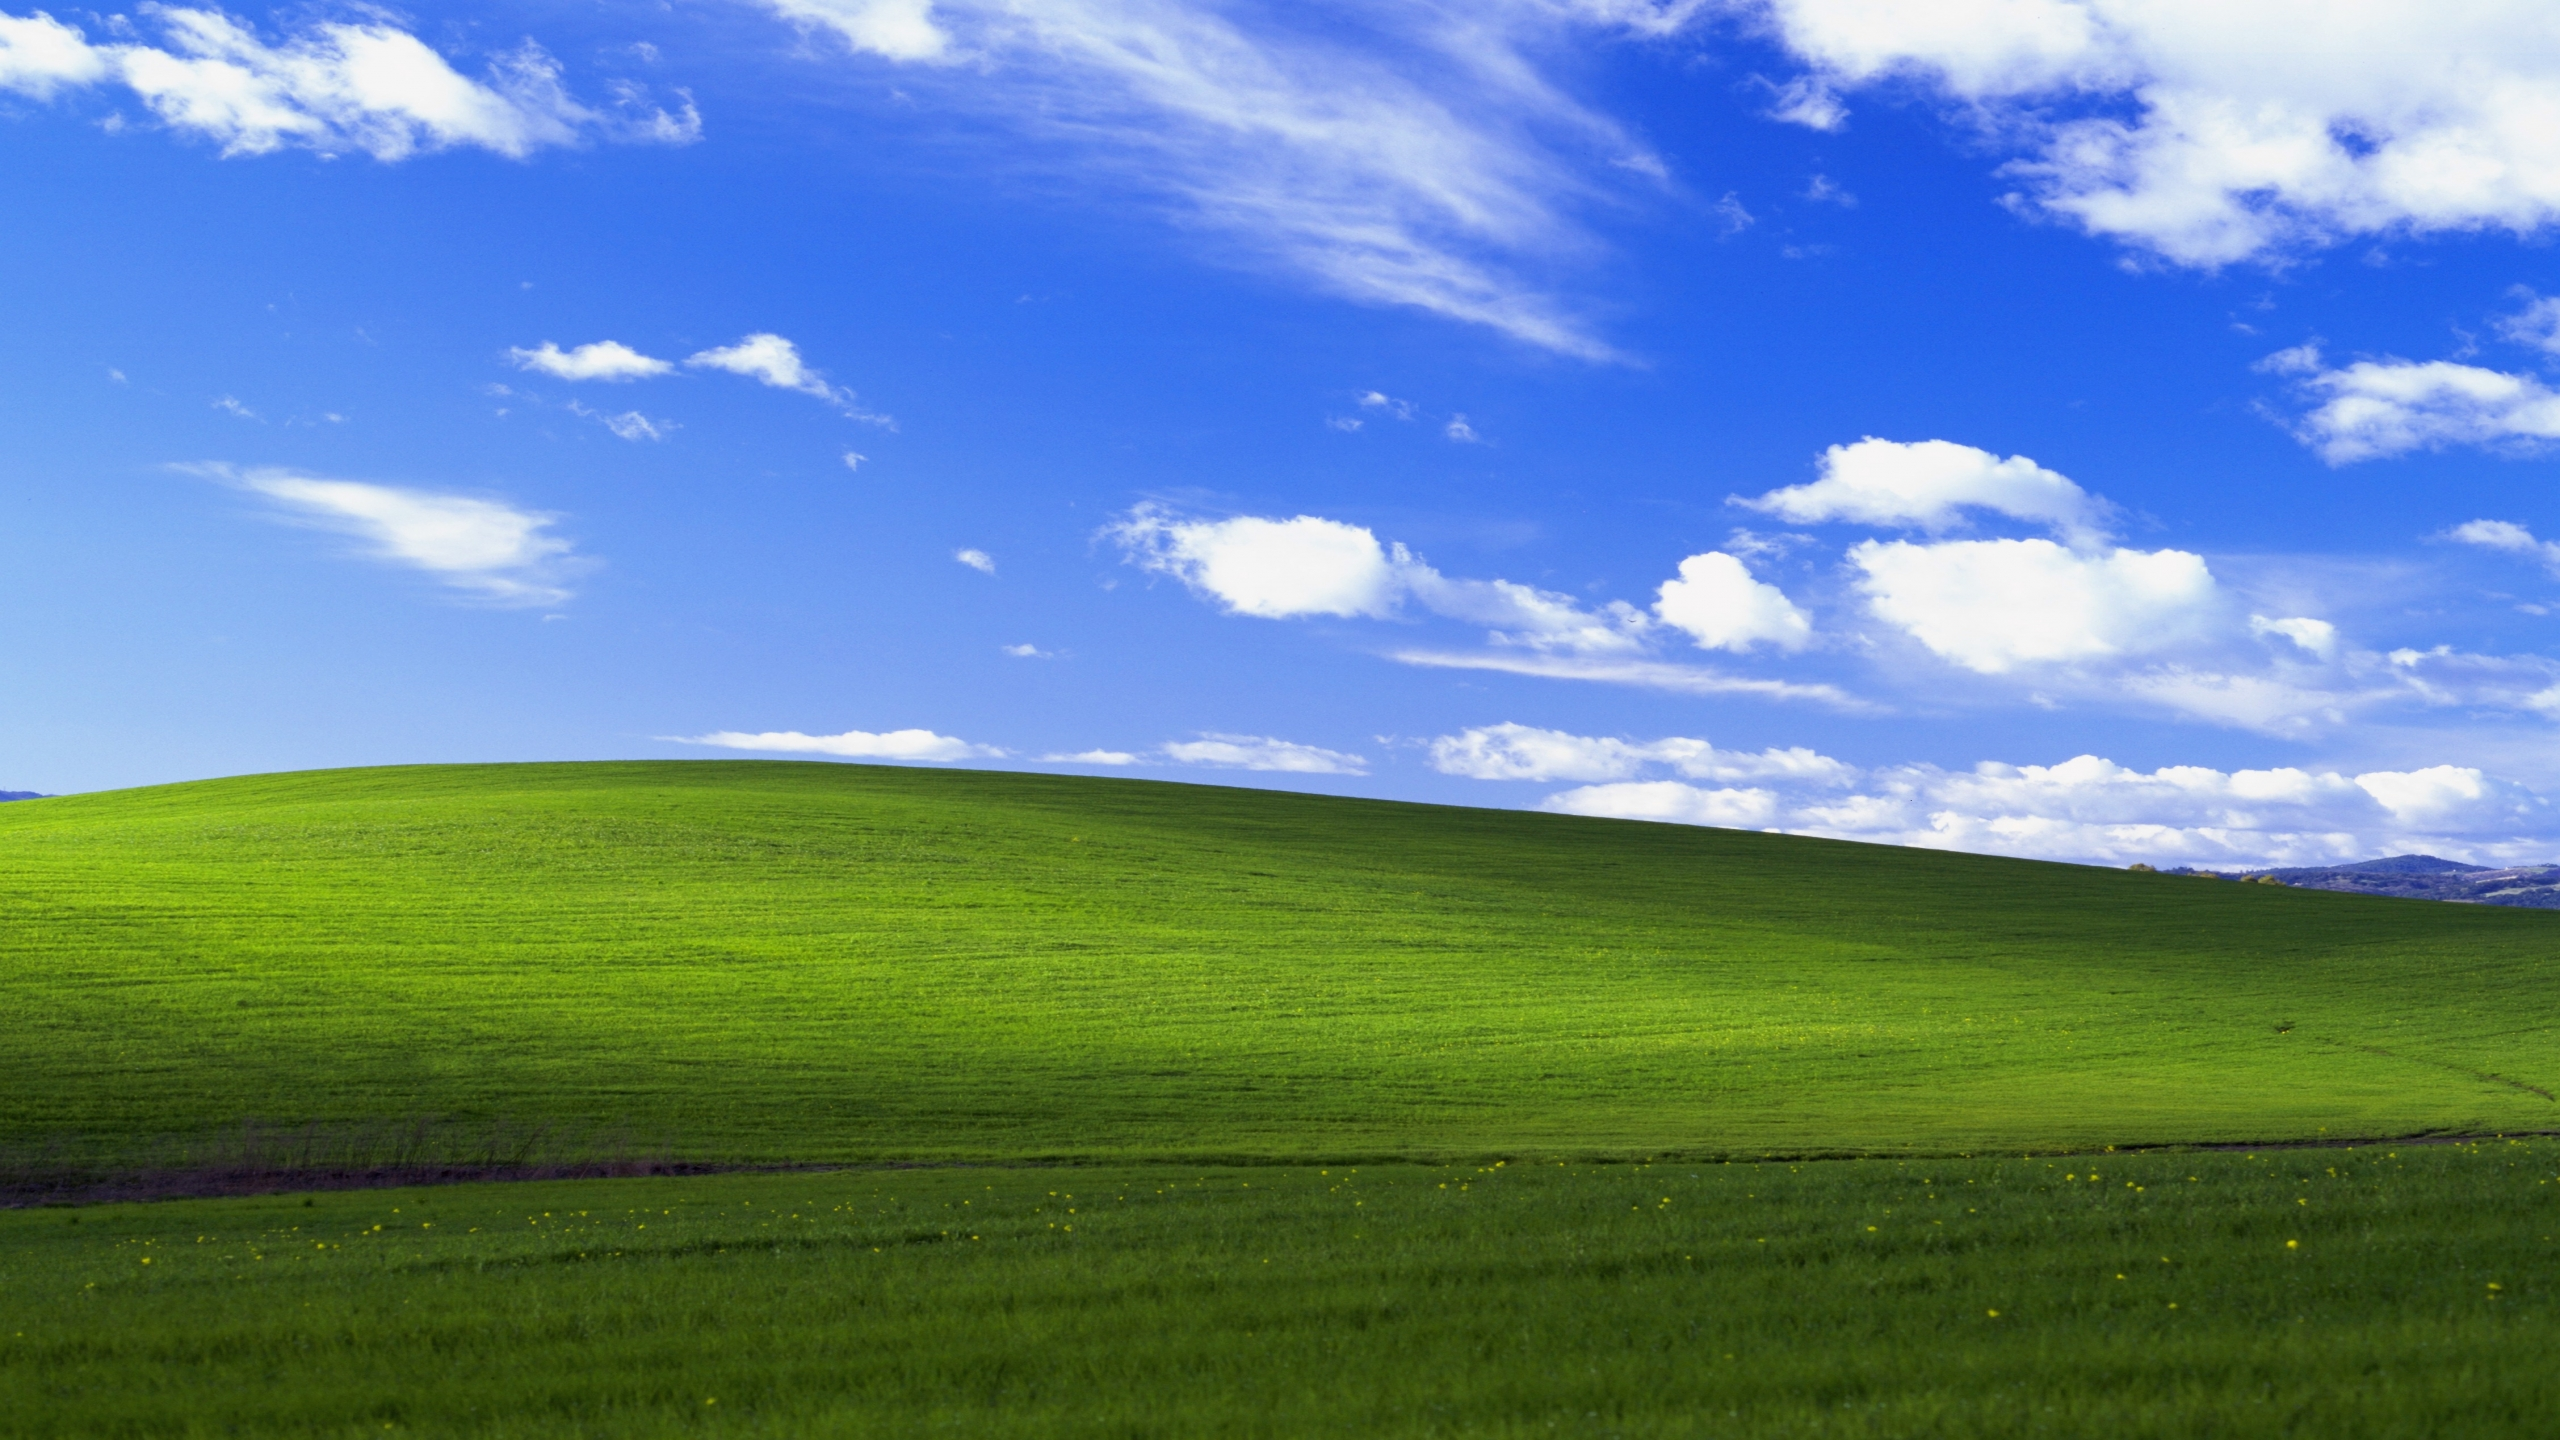 background windows azure wallpaper bliss coffeehouse location 2560x1440